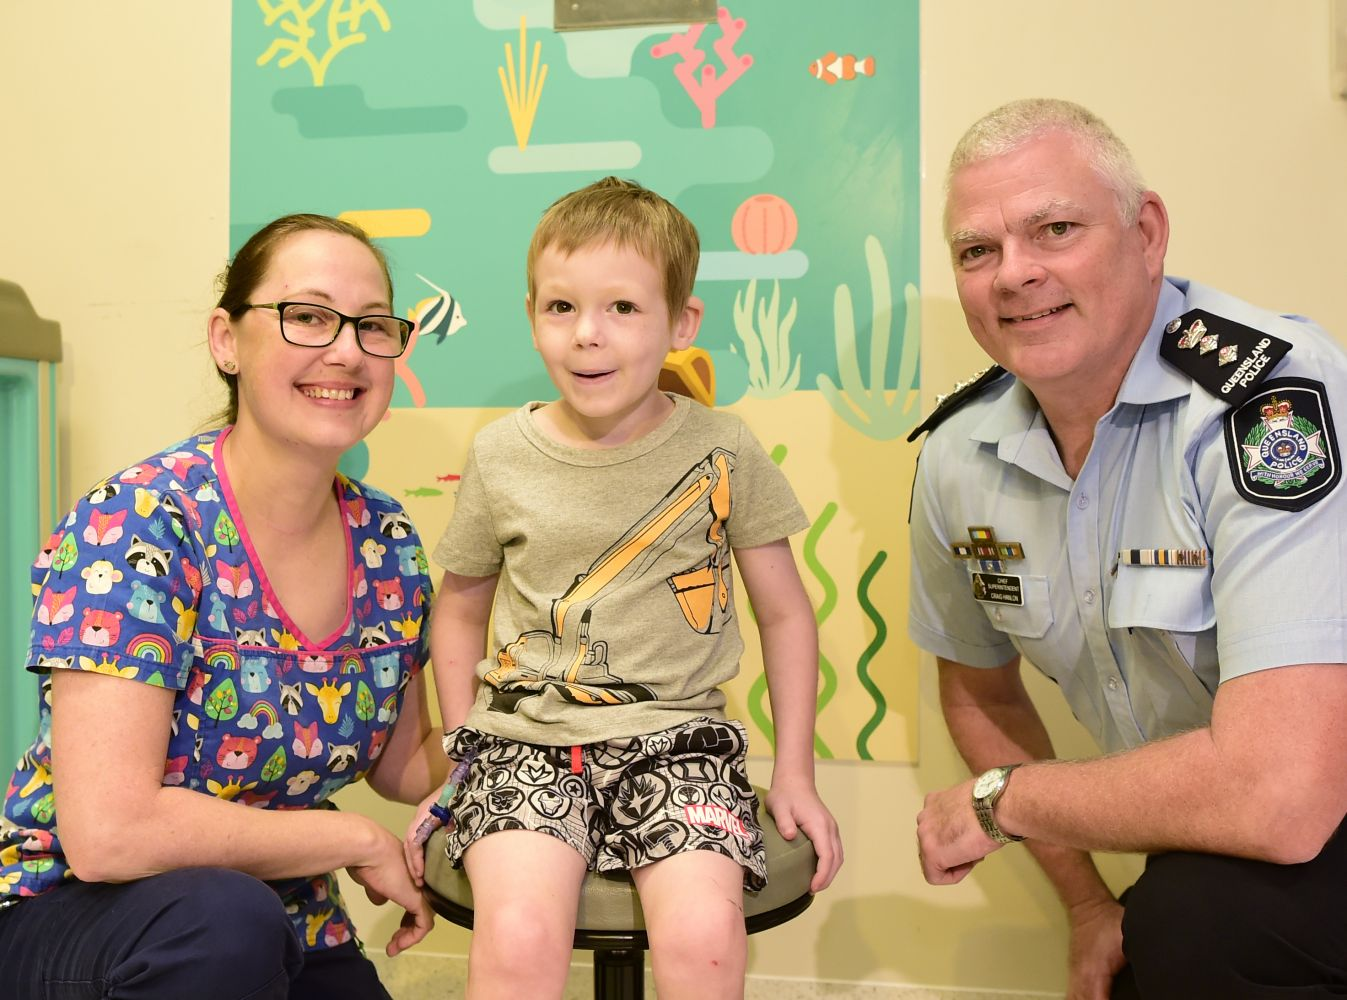 Children's Oncology // Treatment rooms get brighter